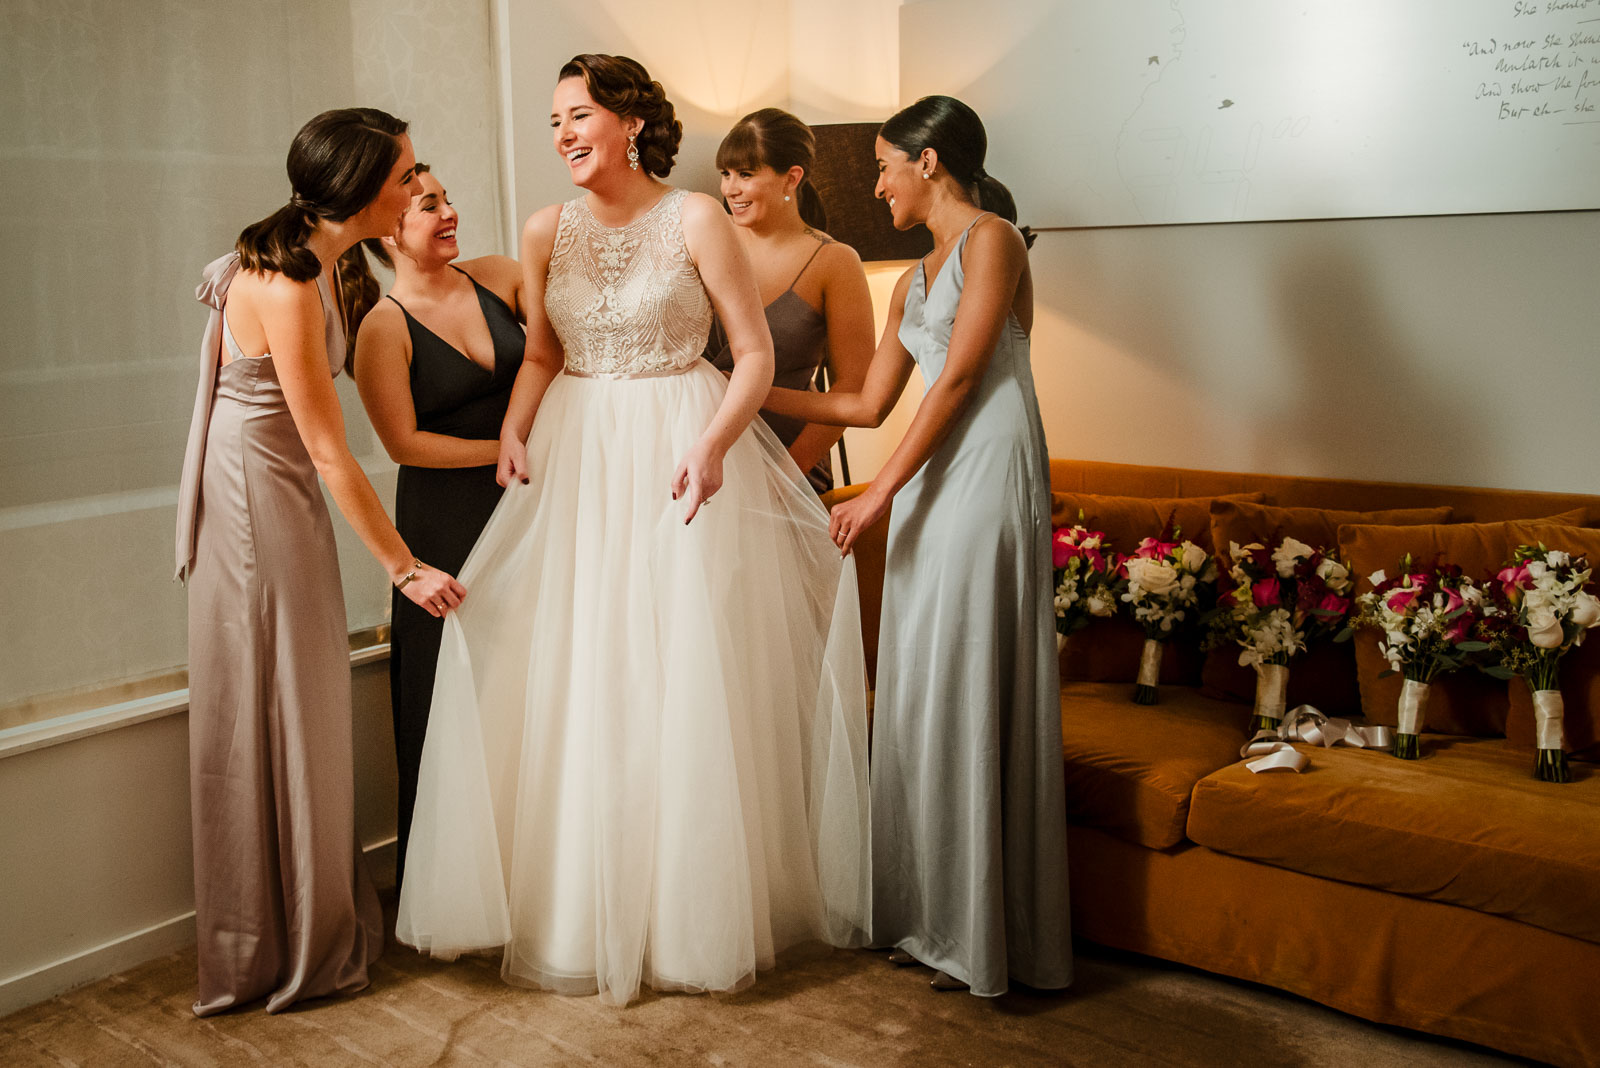 Bridesmaids help bride with her dress